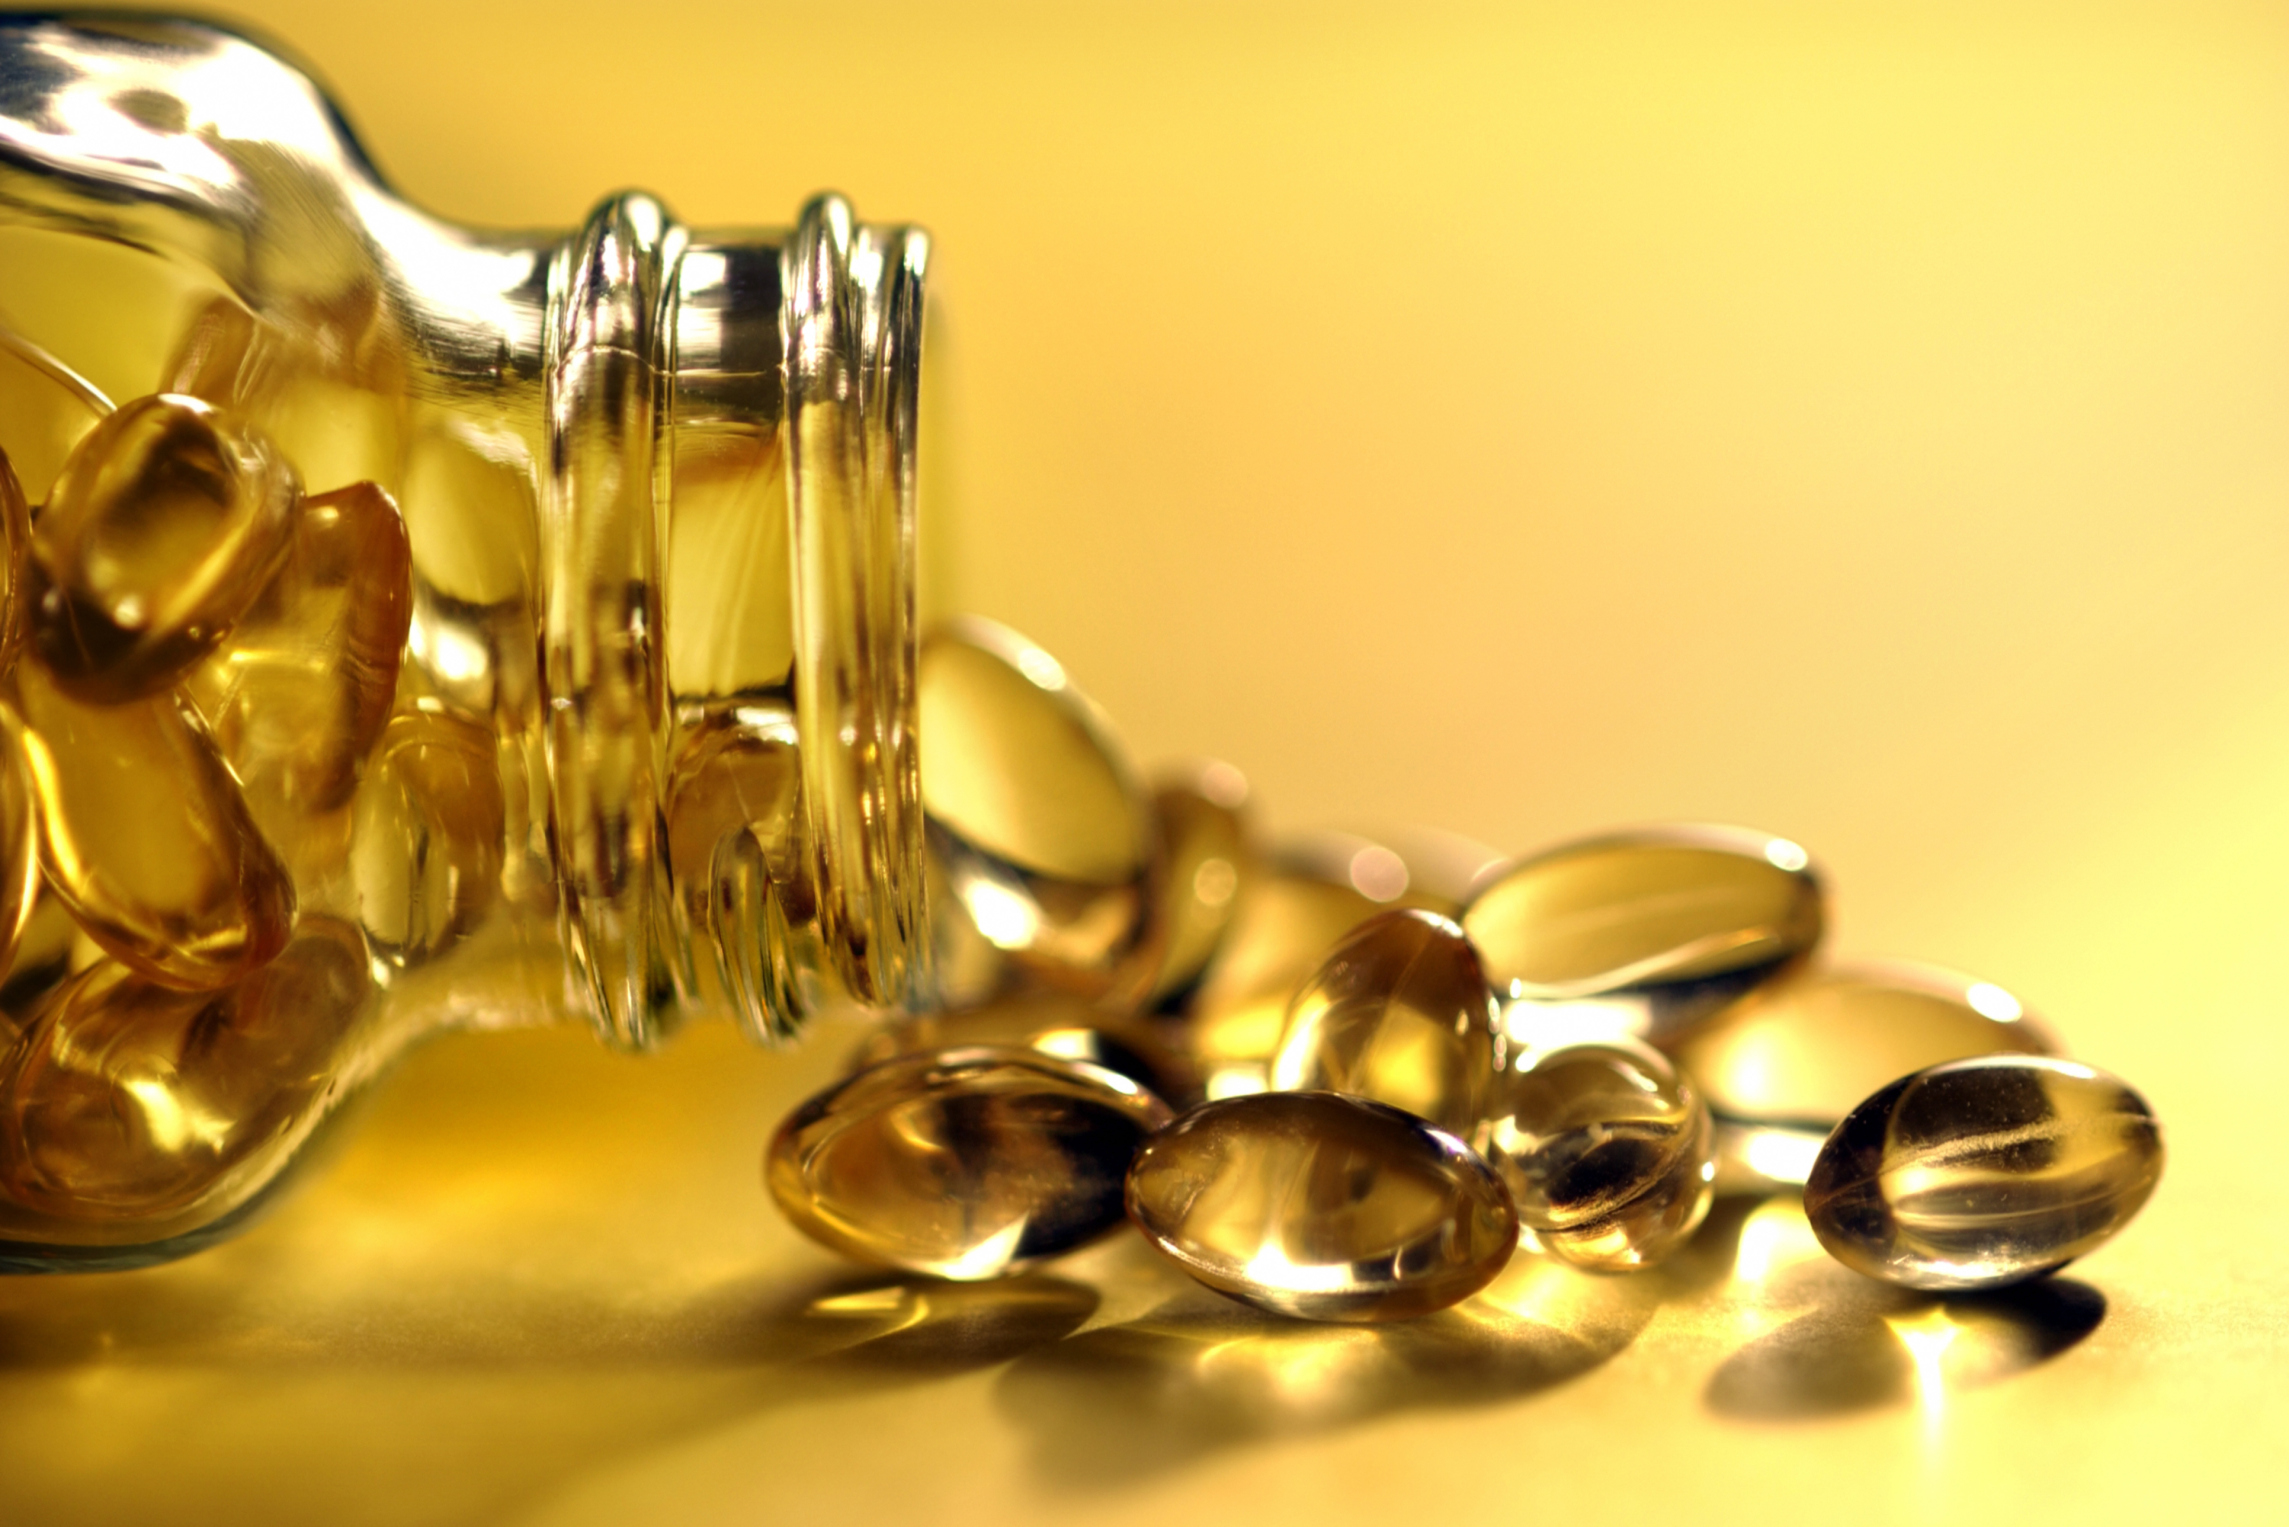 Cod liver oil supplements do not need to be stored in the refrigerator.